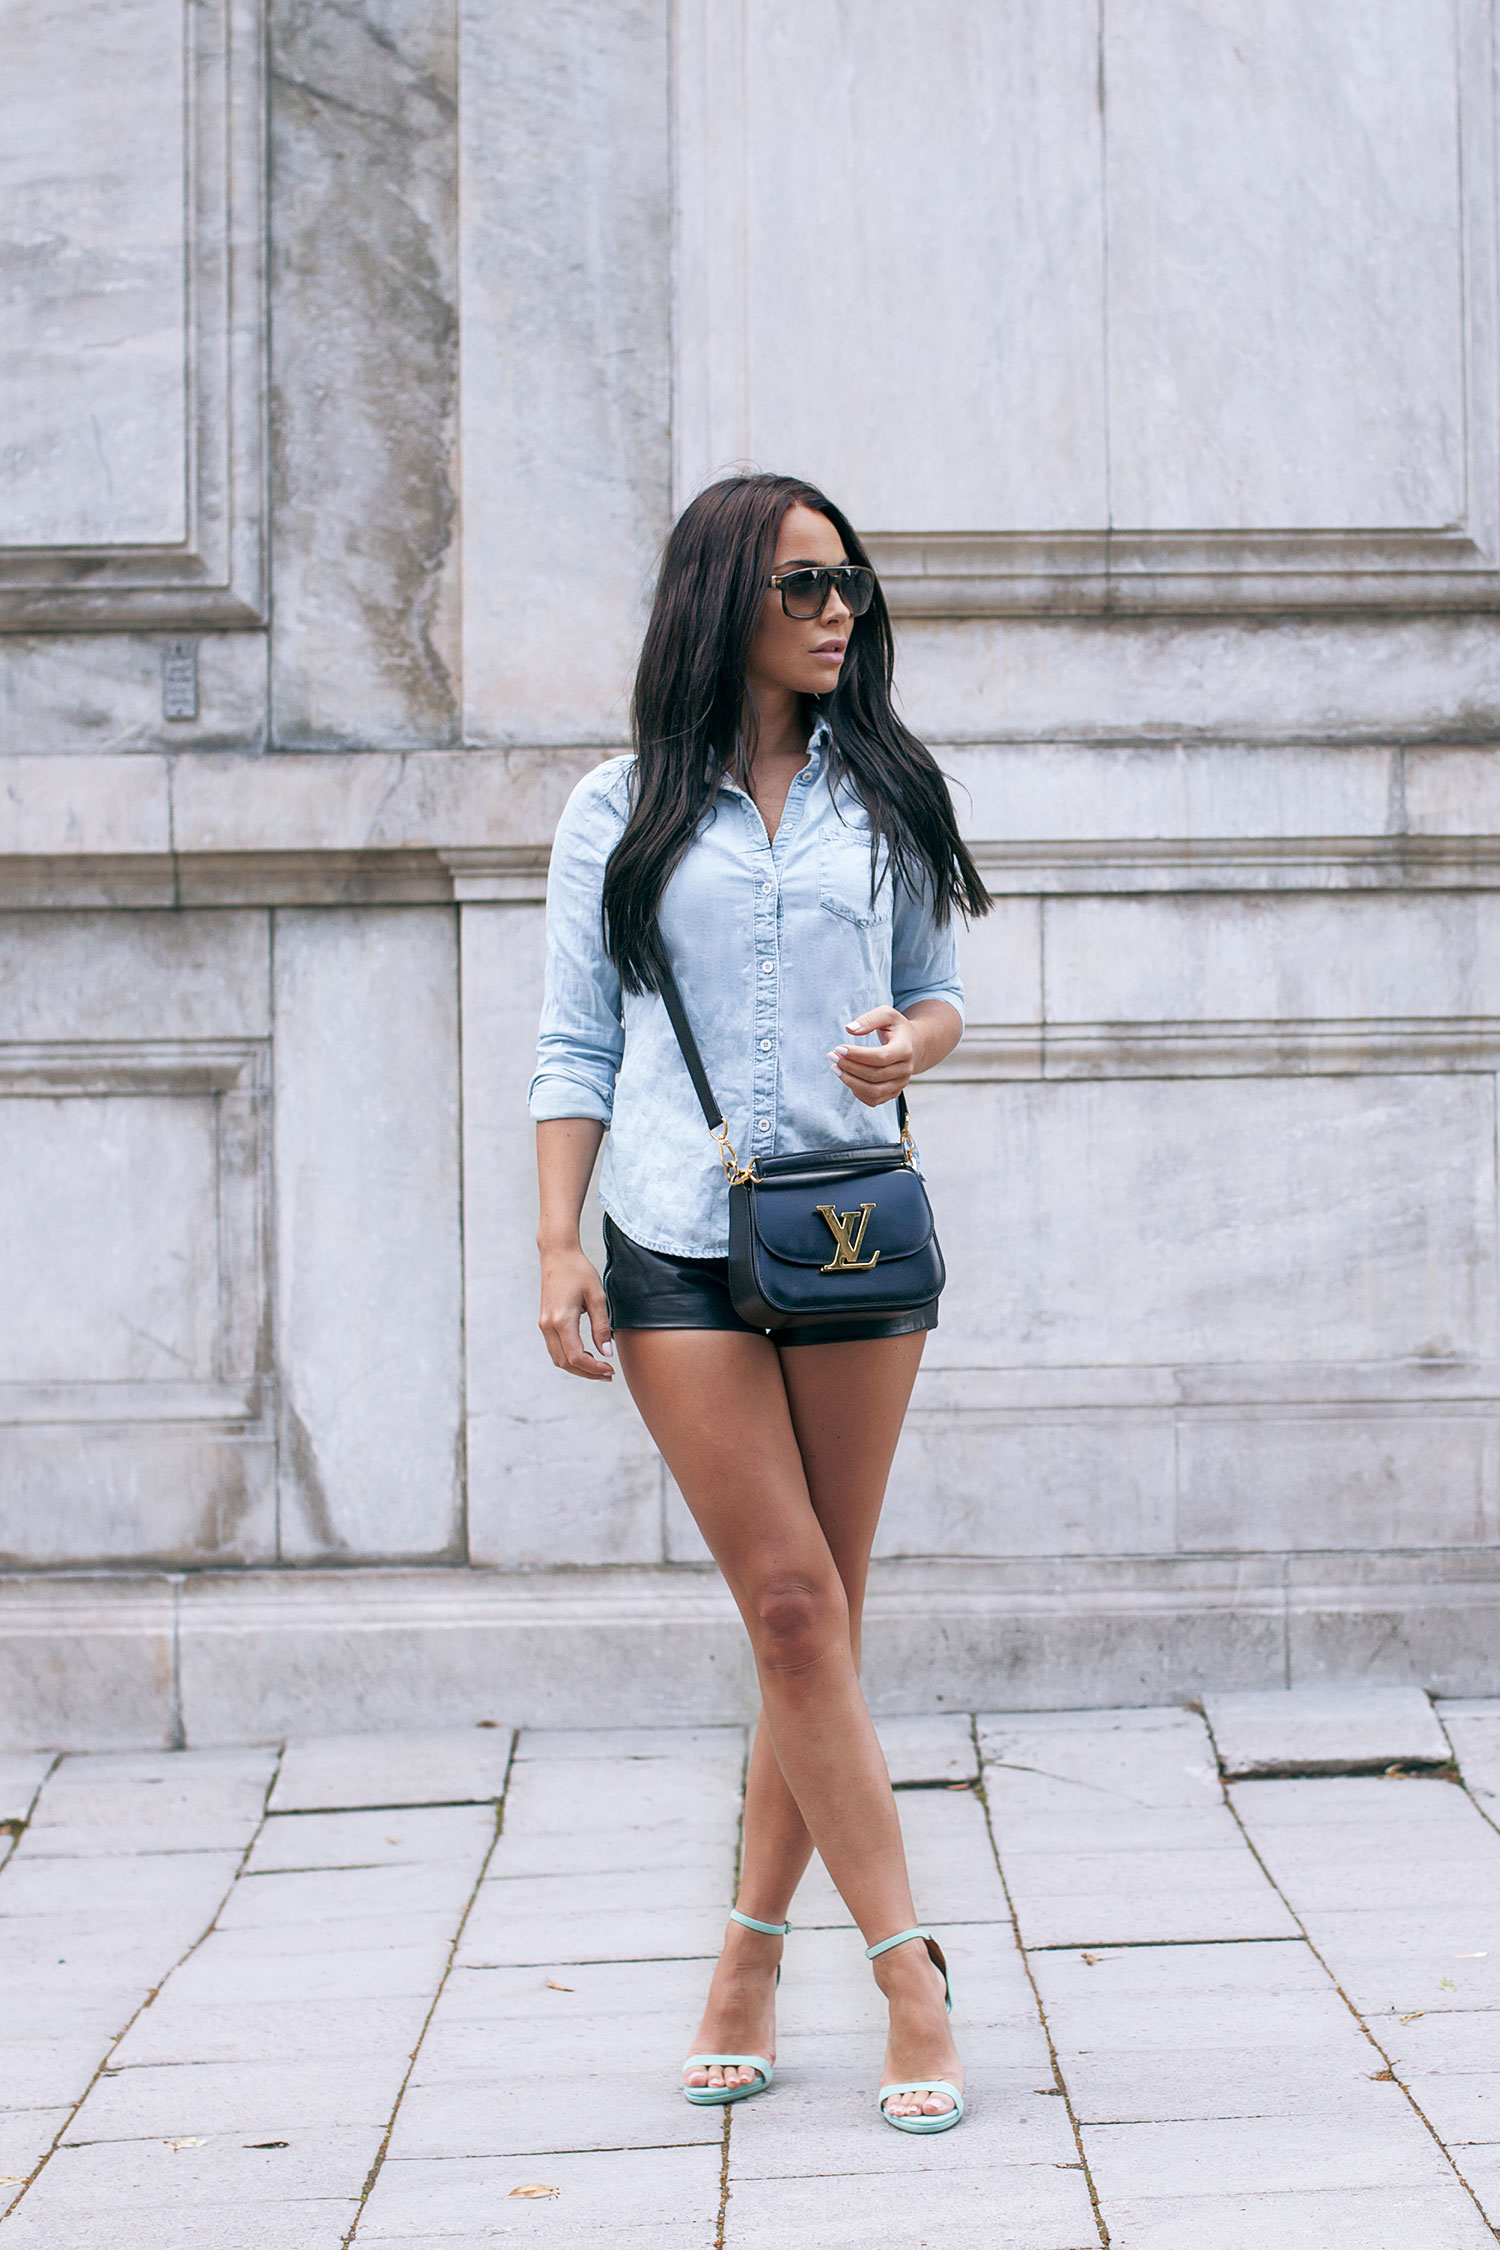 e2580849cee Cute Casual Summer Outfits  This Is What You Should Wear - Just The ...